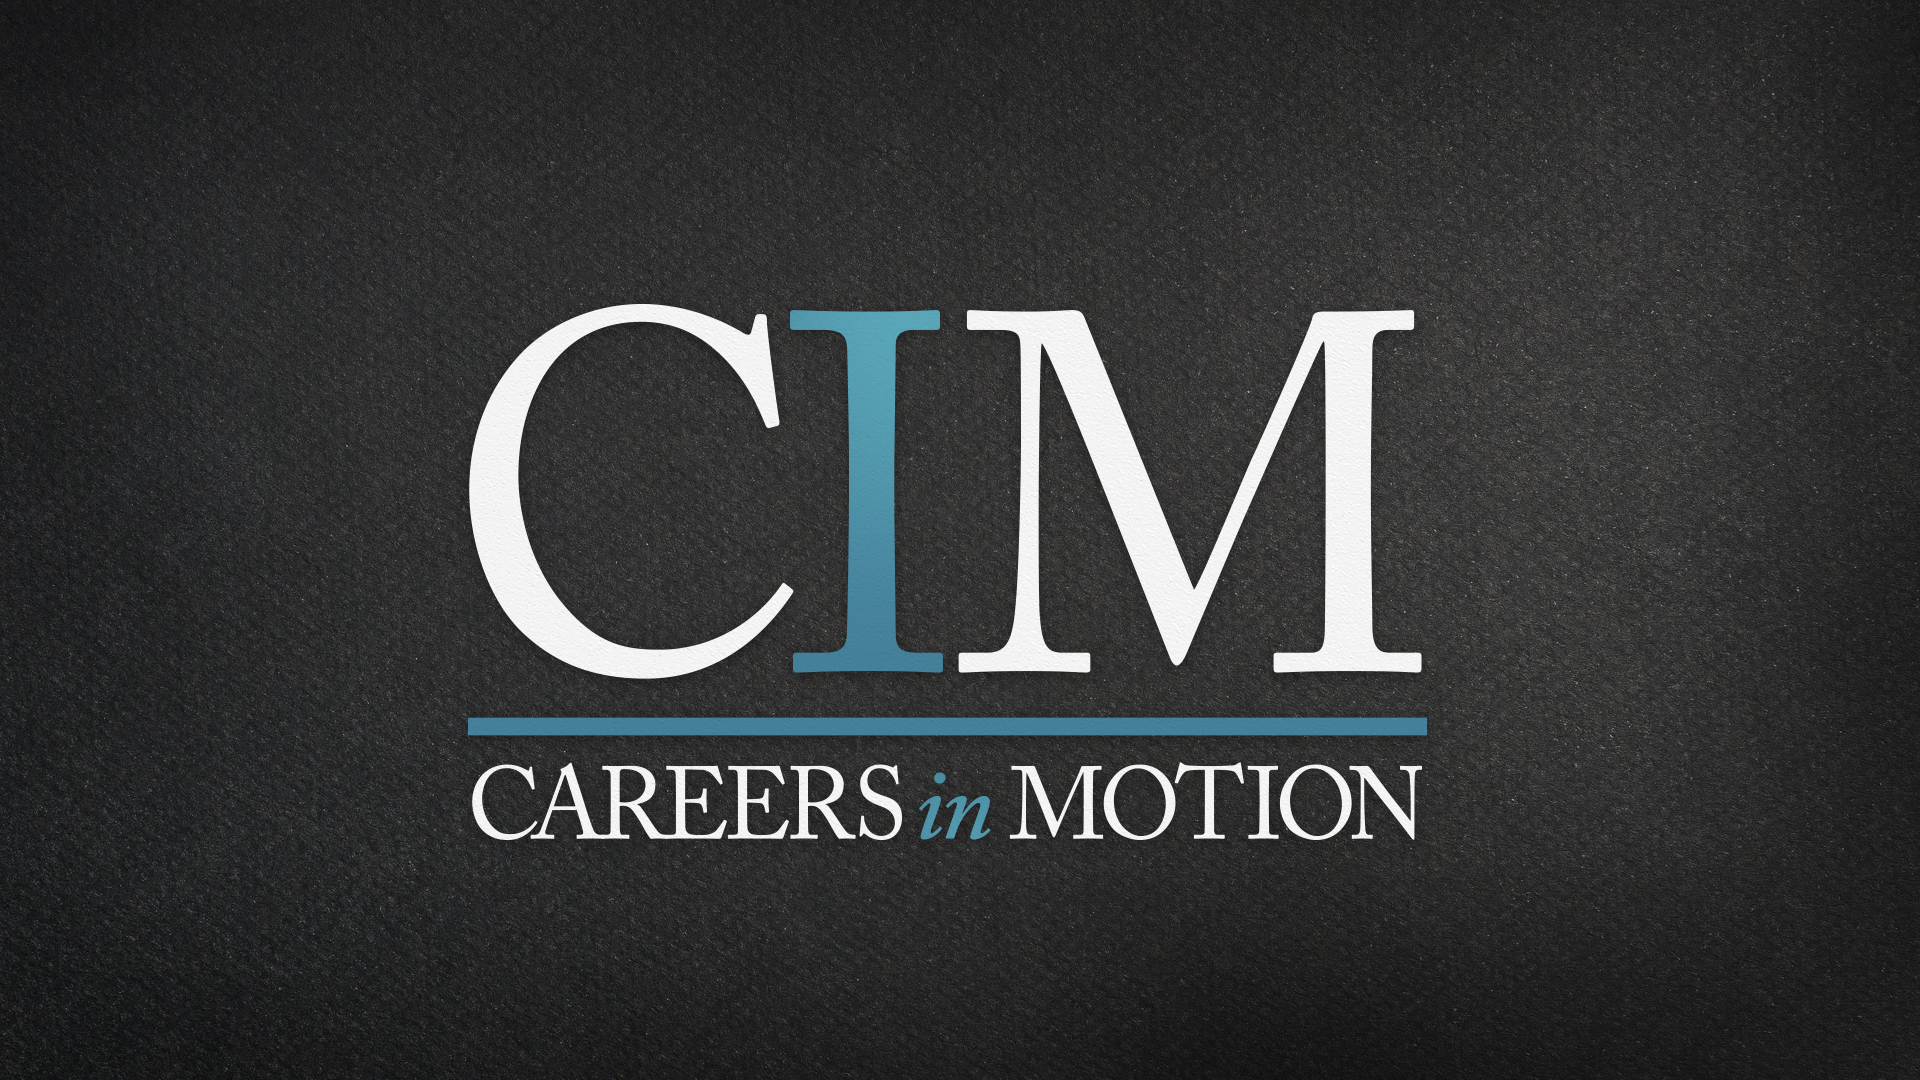 Careers-in-Motion-CRNT-1920x1080px